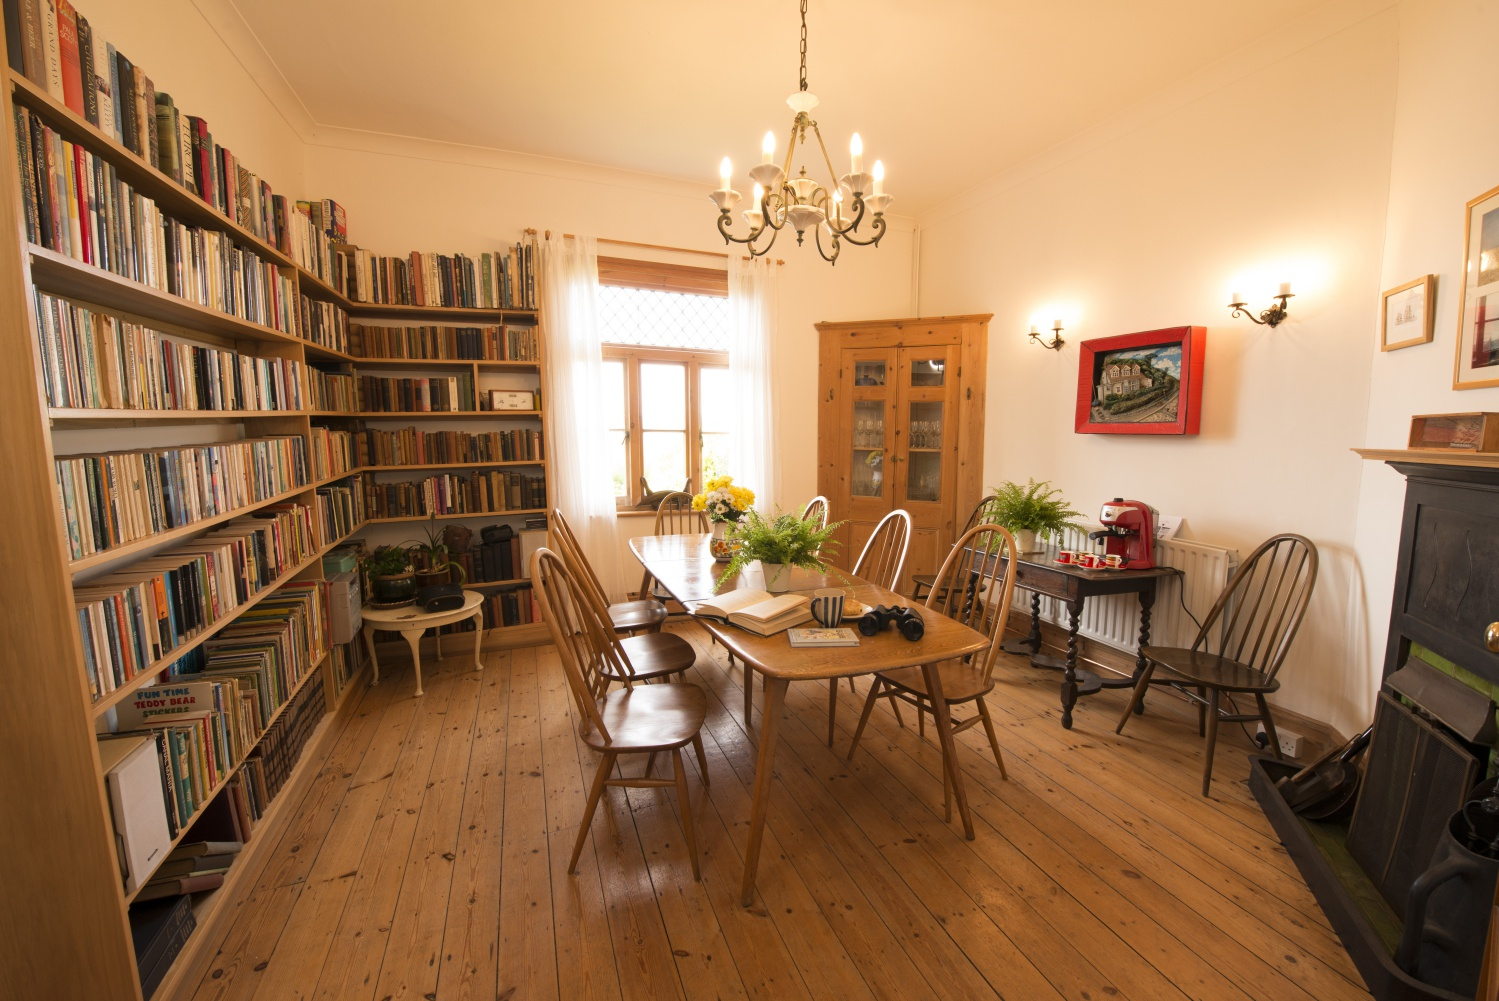 Charming book-filled dining room